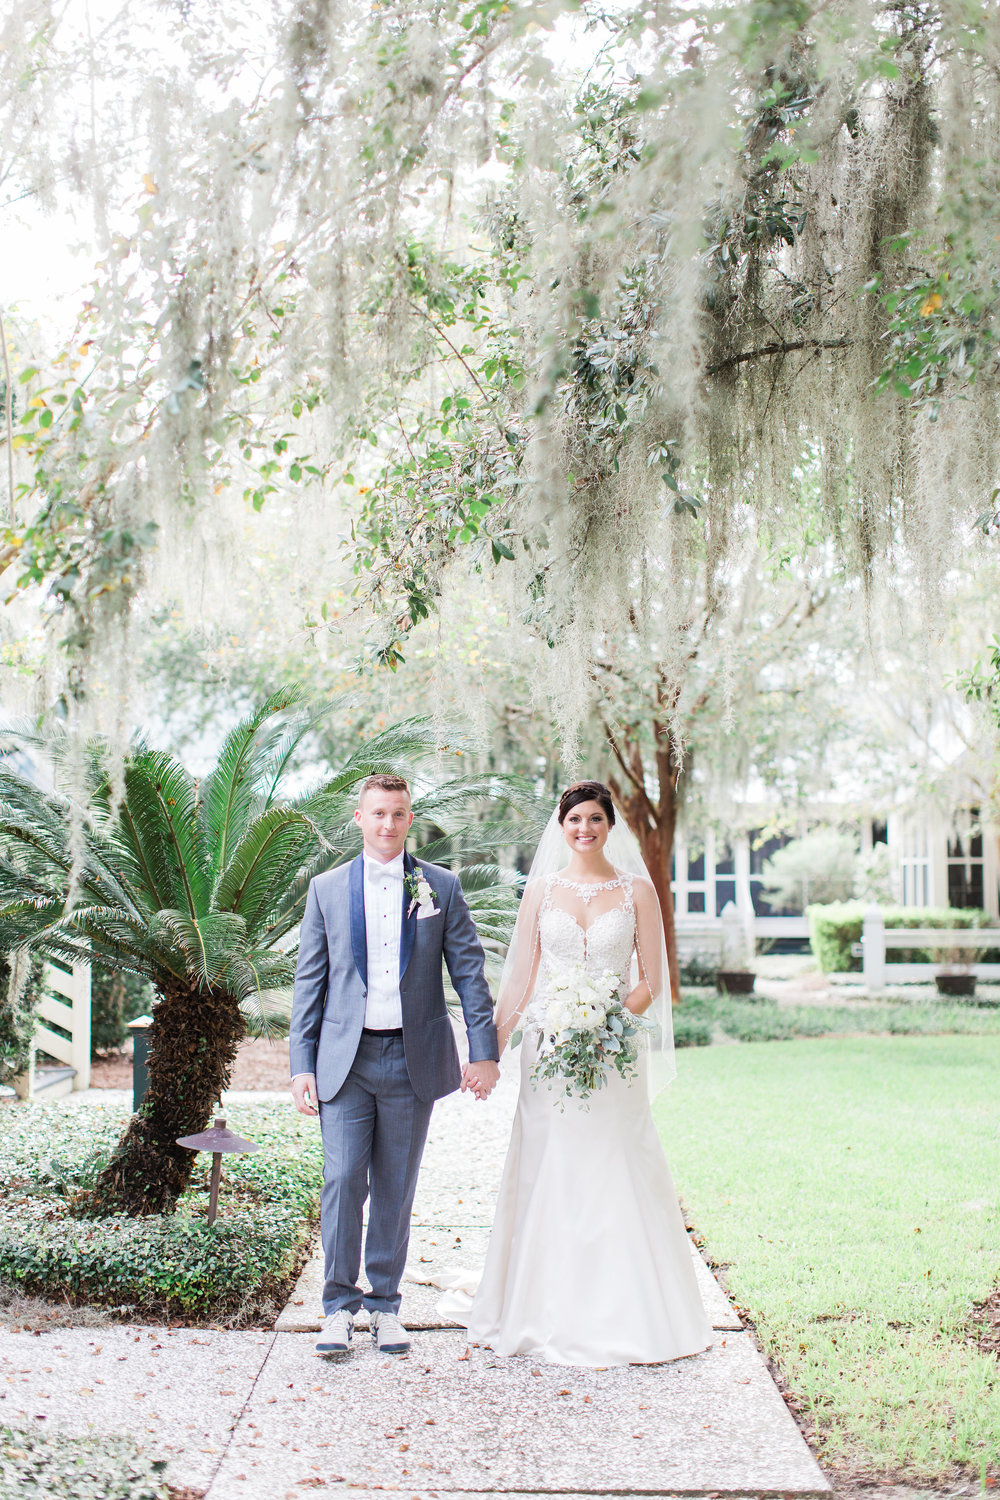 apt-b-photography-lauren-graham-oldfield-wedding-south-carolina-wedding-photographer-savannah-wedding-lowcountry-wedding-coastal-wedding-first-look-15.JPG